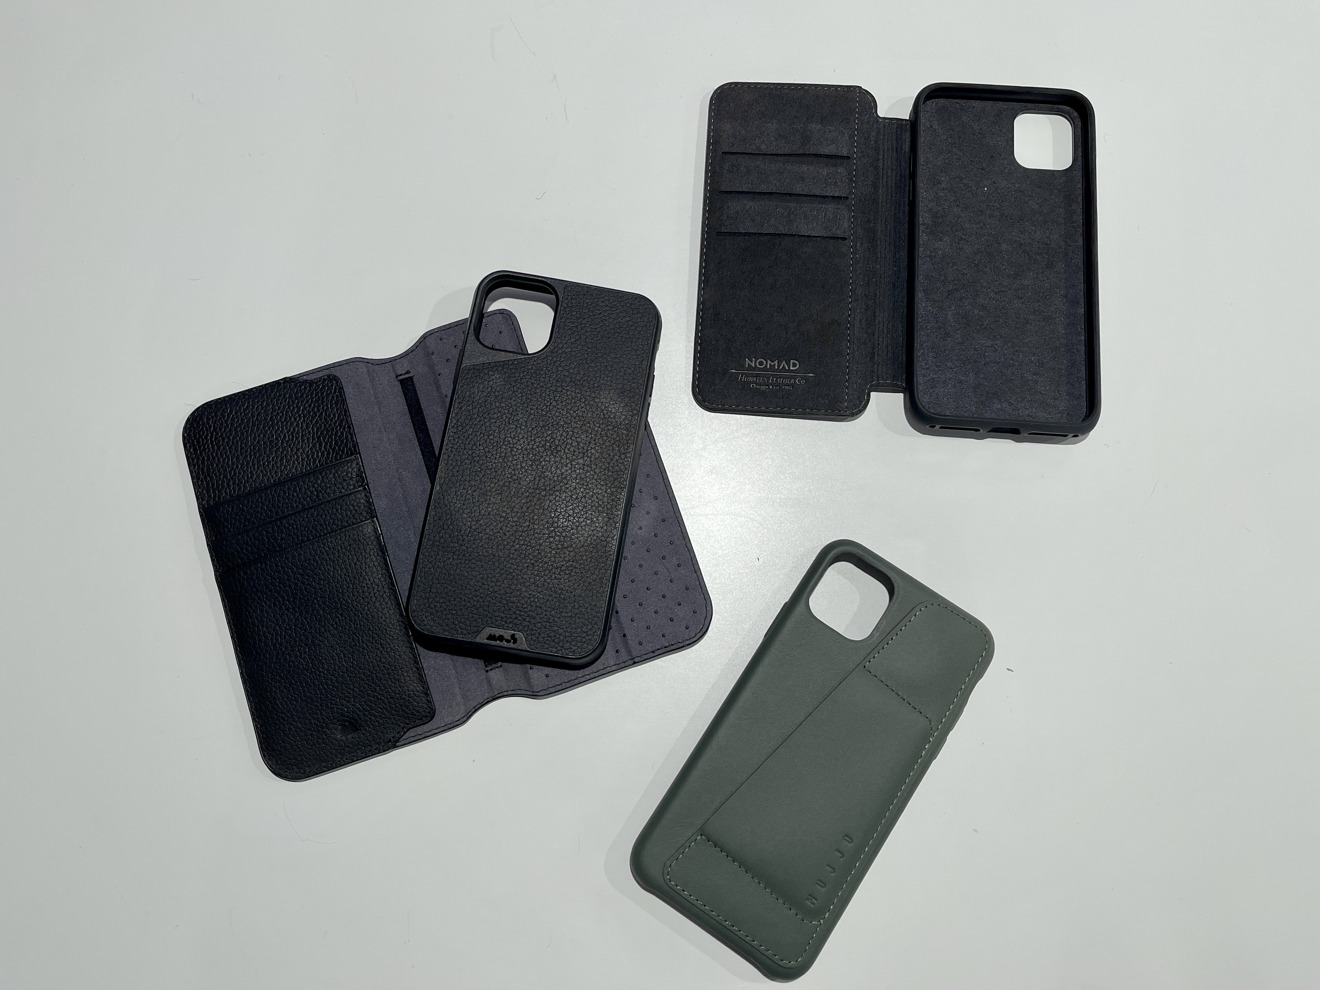 Just some of the wallets I've tried for the iPhone 11 Pro Max alone